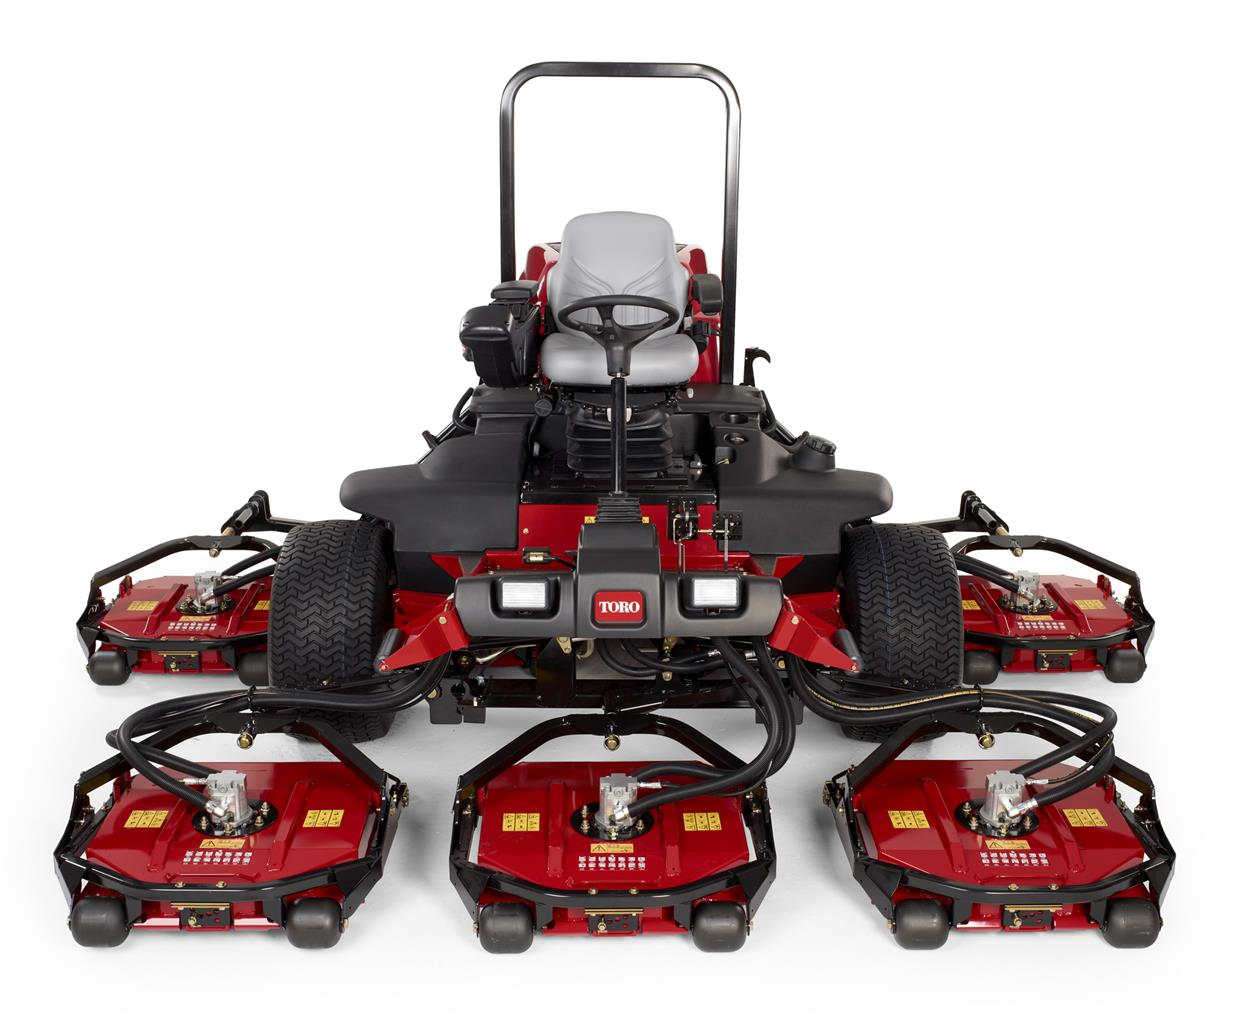 groundsmaster 4700 front.ashx?mw=700&mh=599&hash=F13194F91BF7A0A6052C9665A5C8AFE094A8D088 toro groundsmaster� 4700 d (30882) Toro Groundsmaster 117 Parting Out at gsmx.co